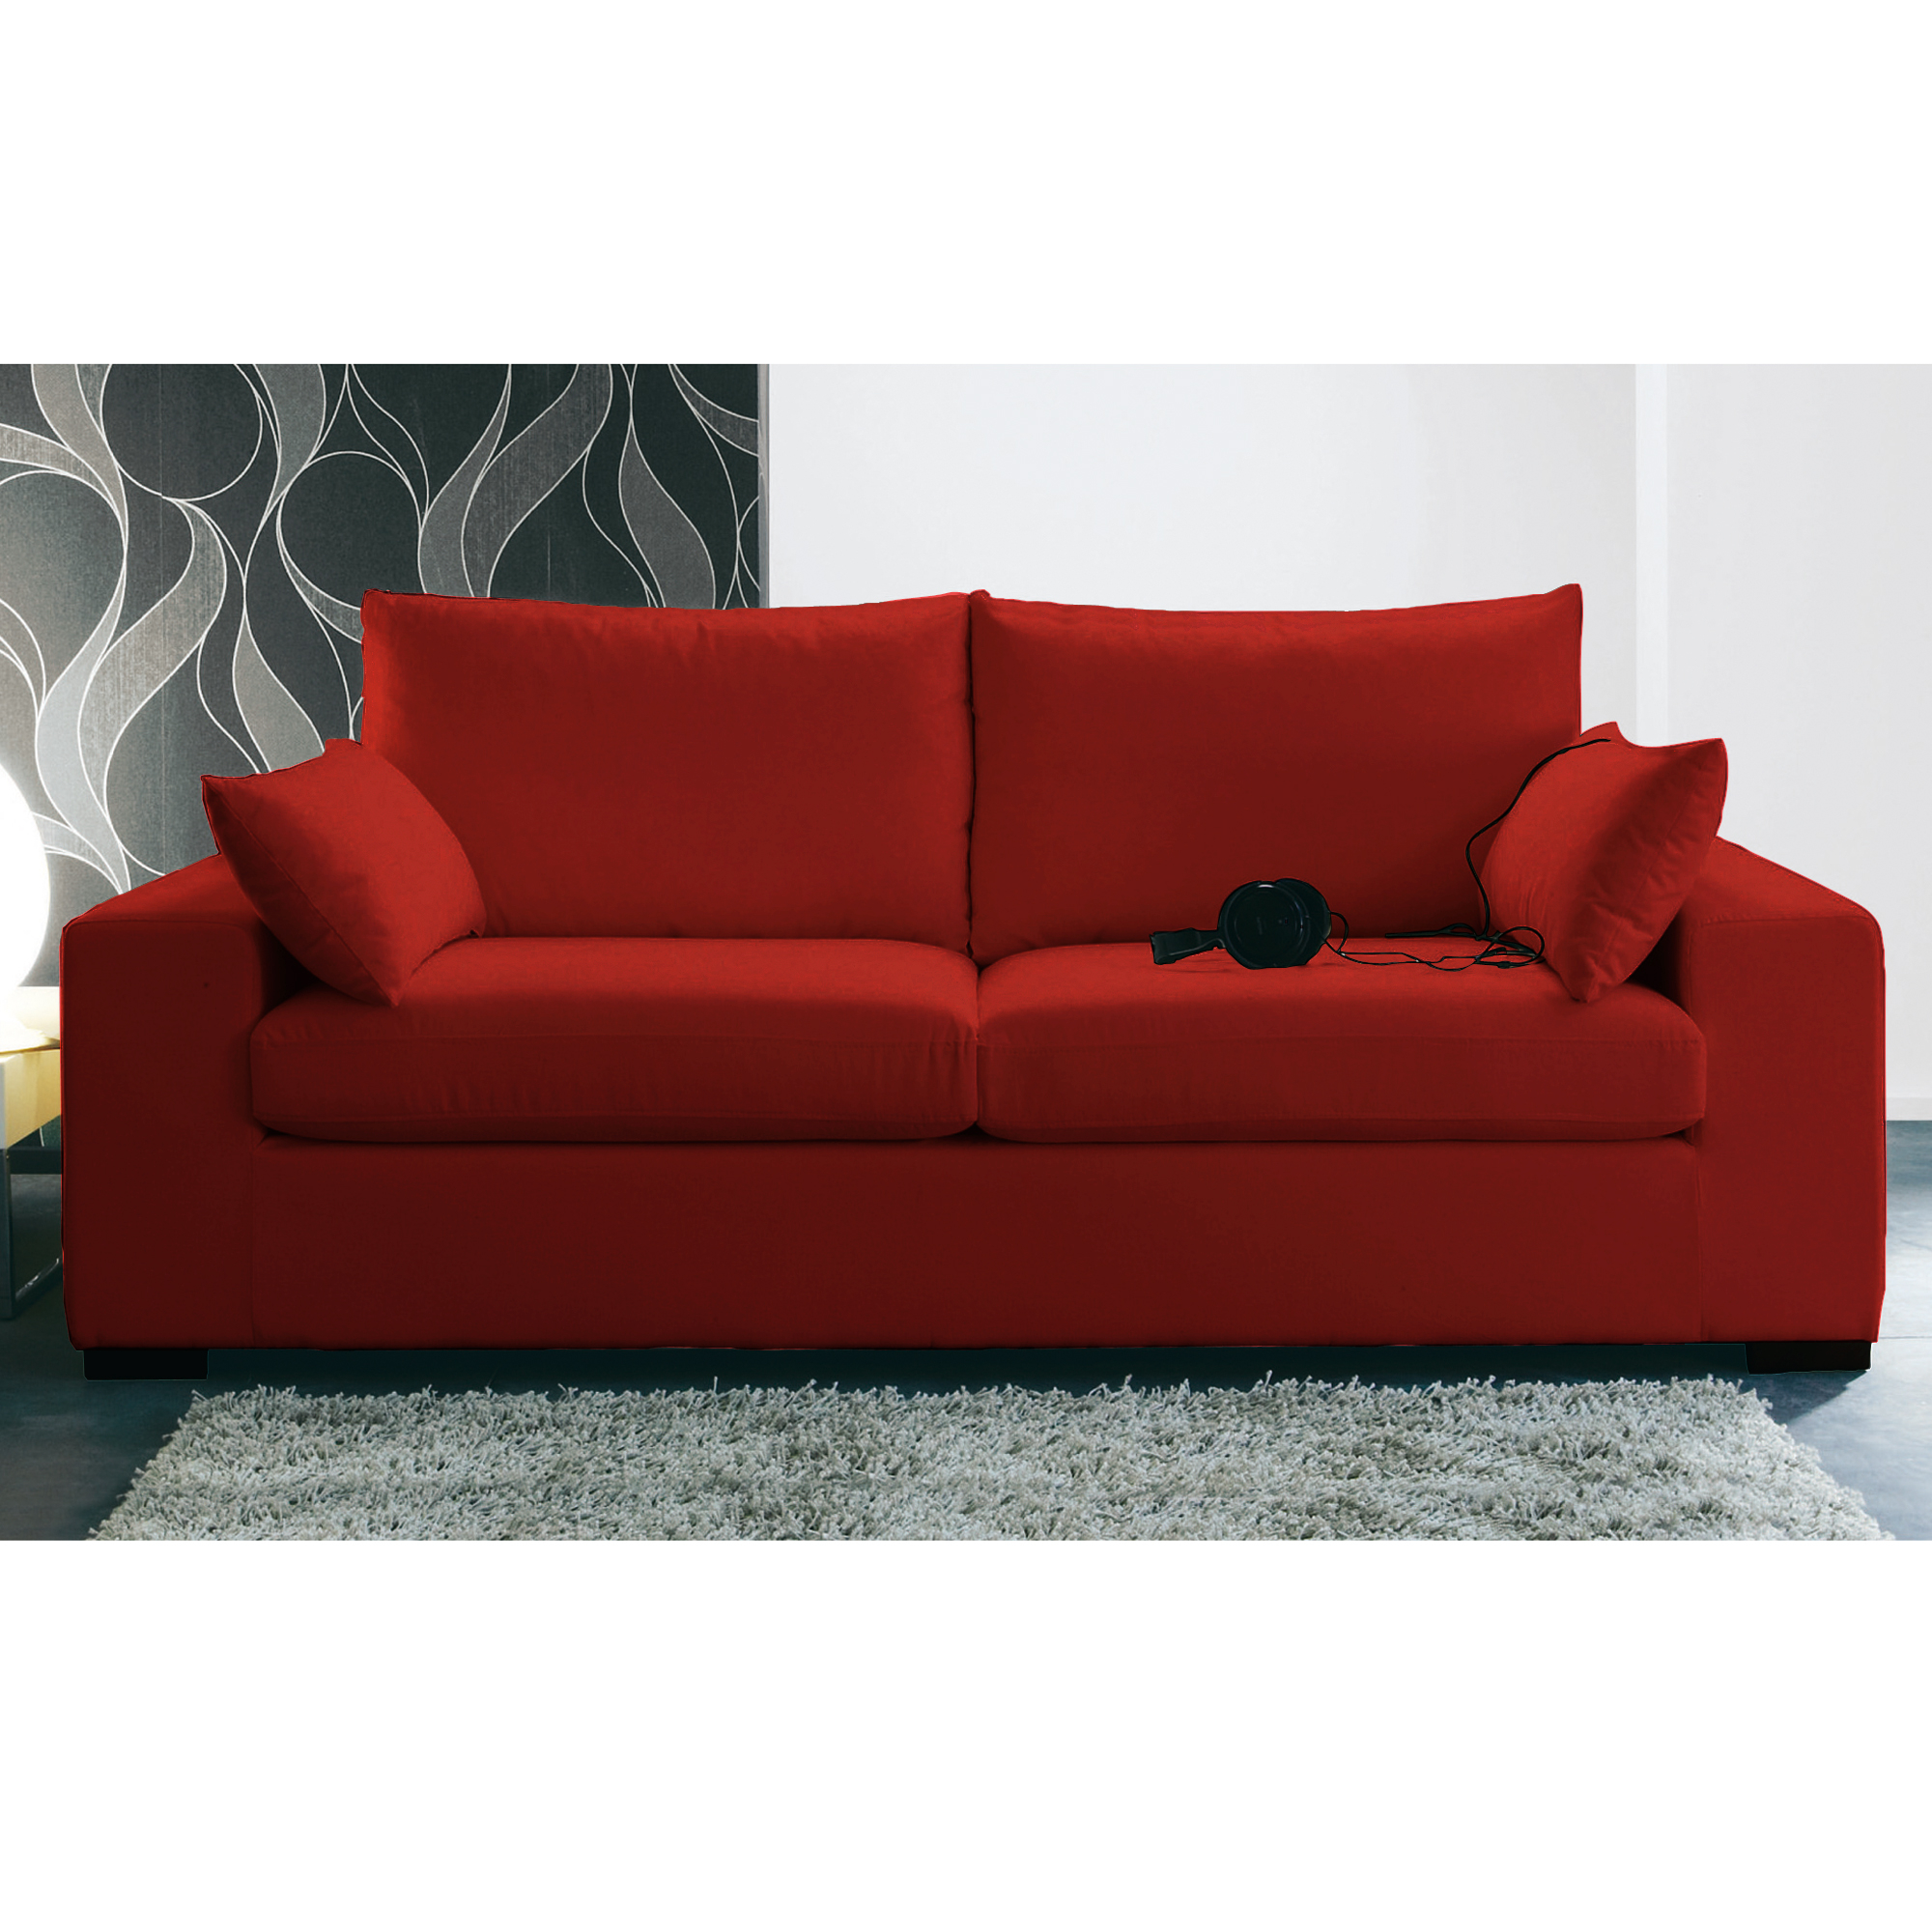 Canap 3 places convertible vittorio 2 rouge - Canape rouge 2 places ...